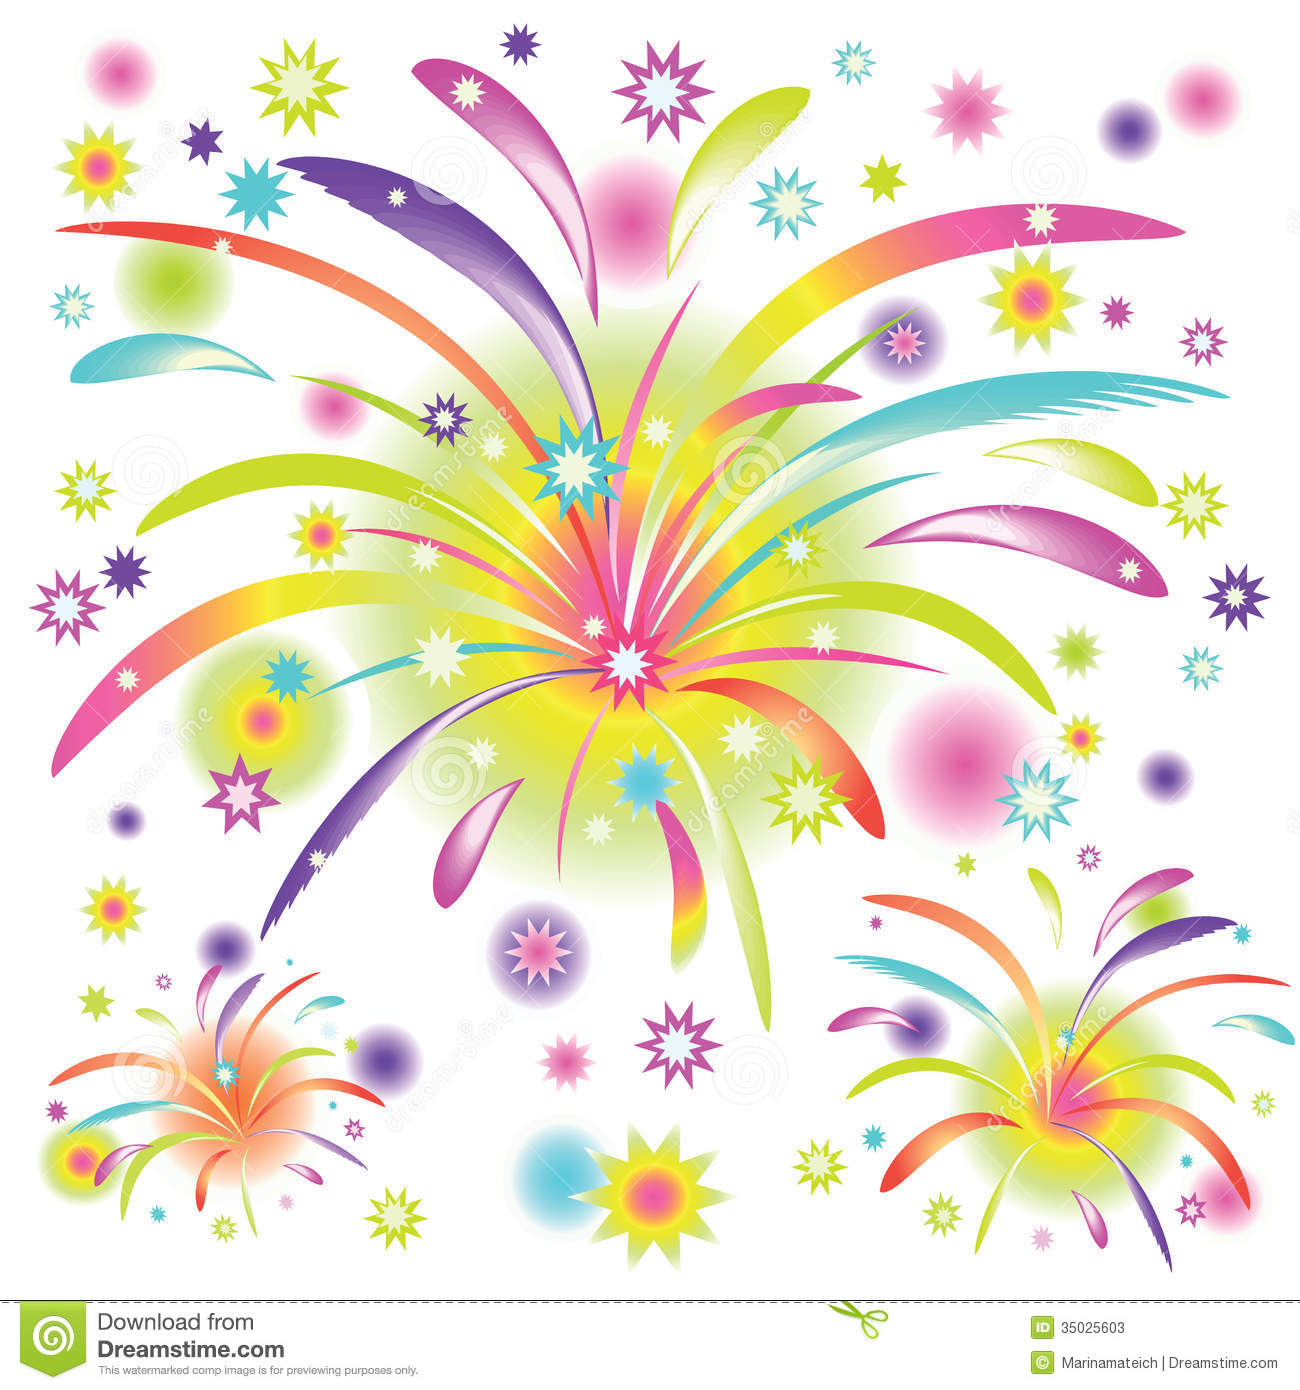 Abstract colorful fireworks on white background with rainbow elements